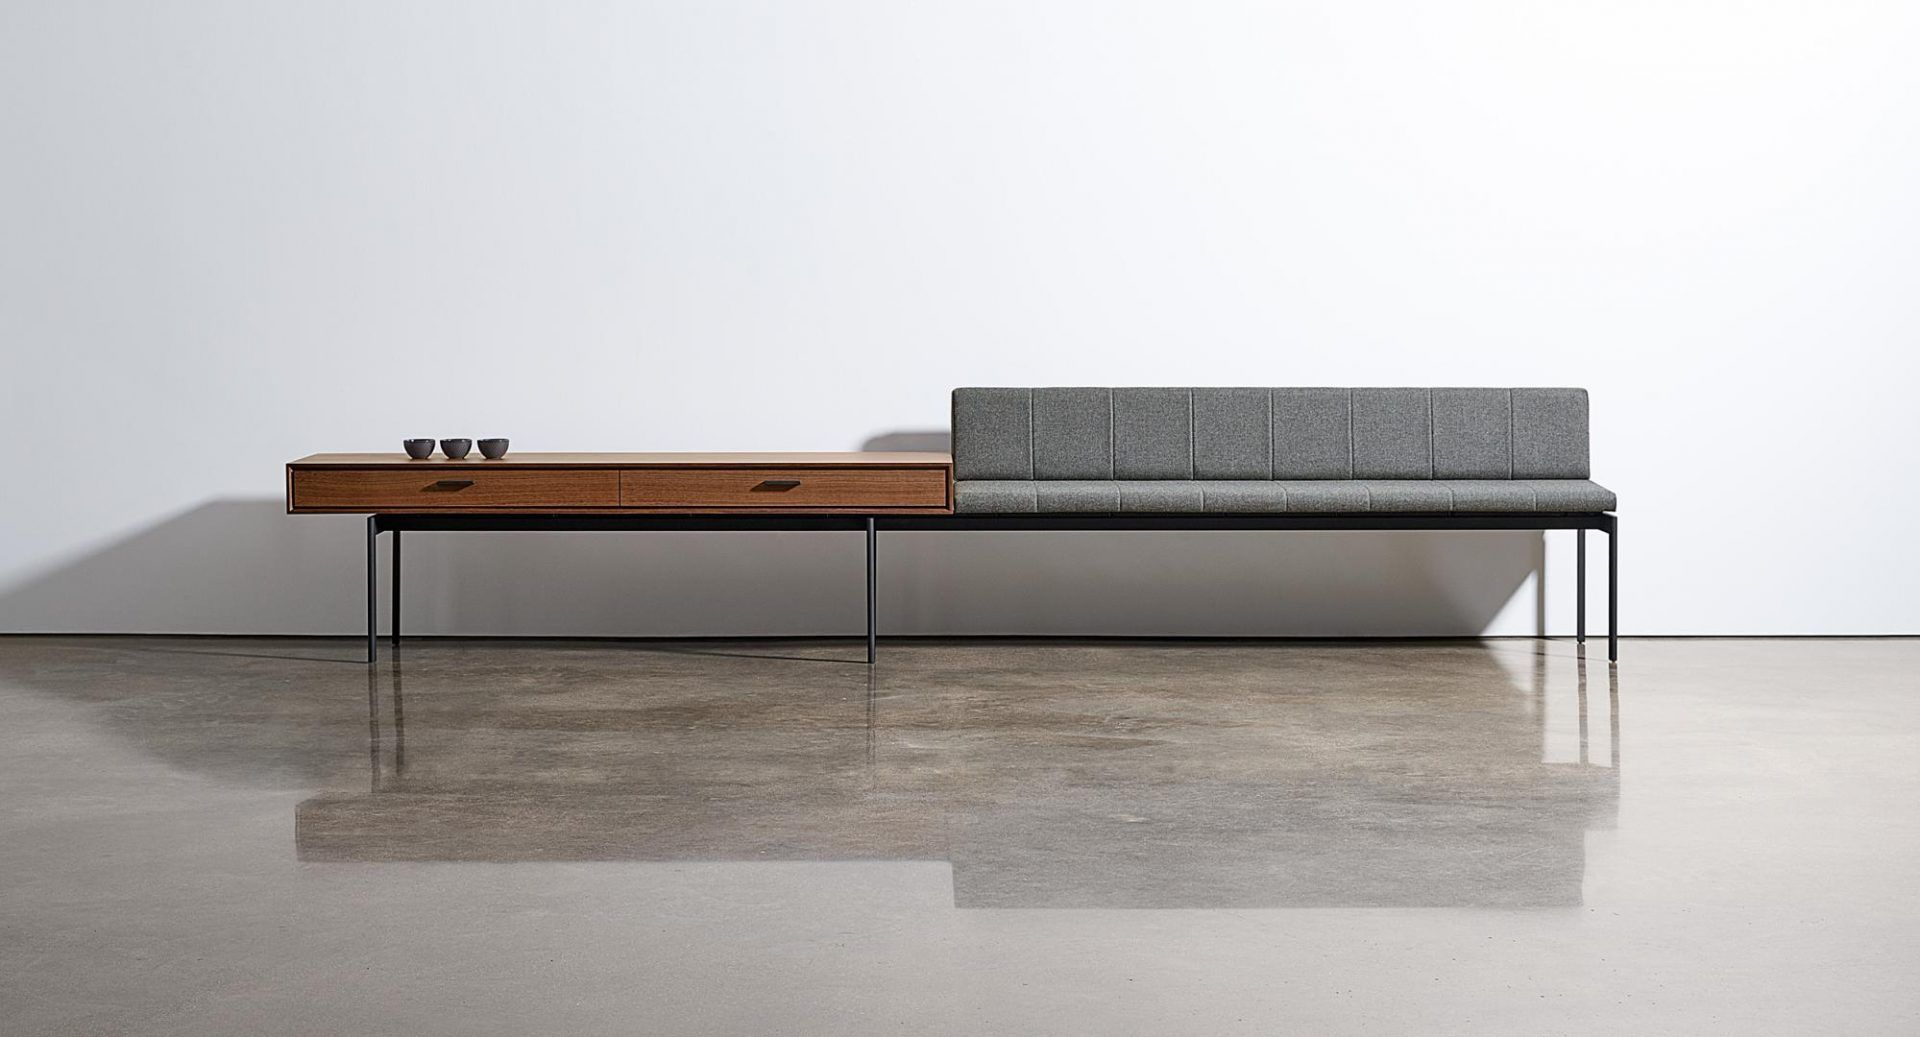 HALCON Halo Bench